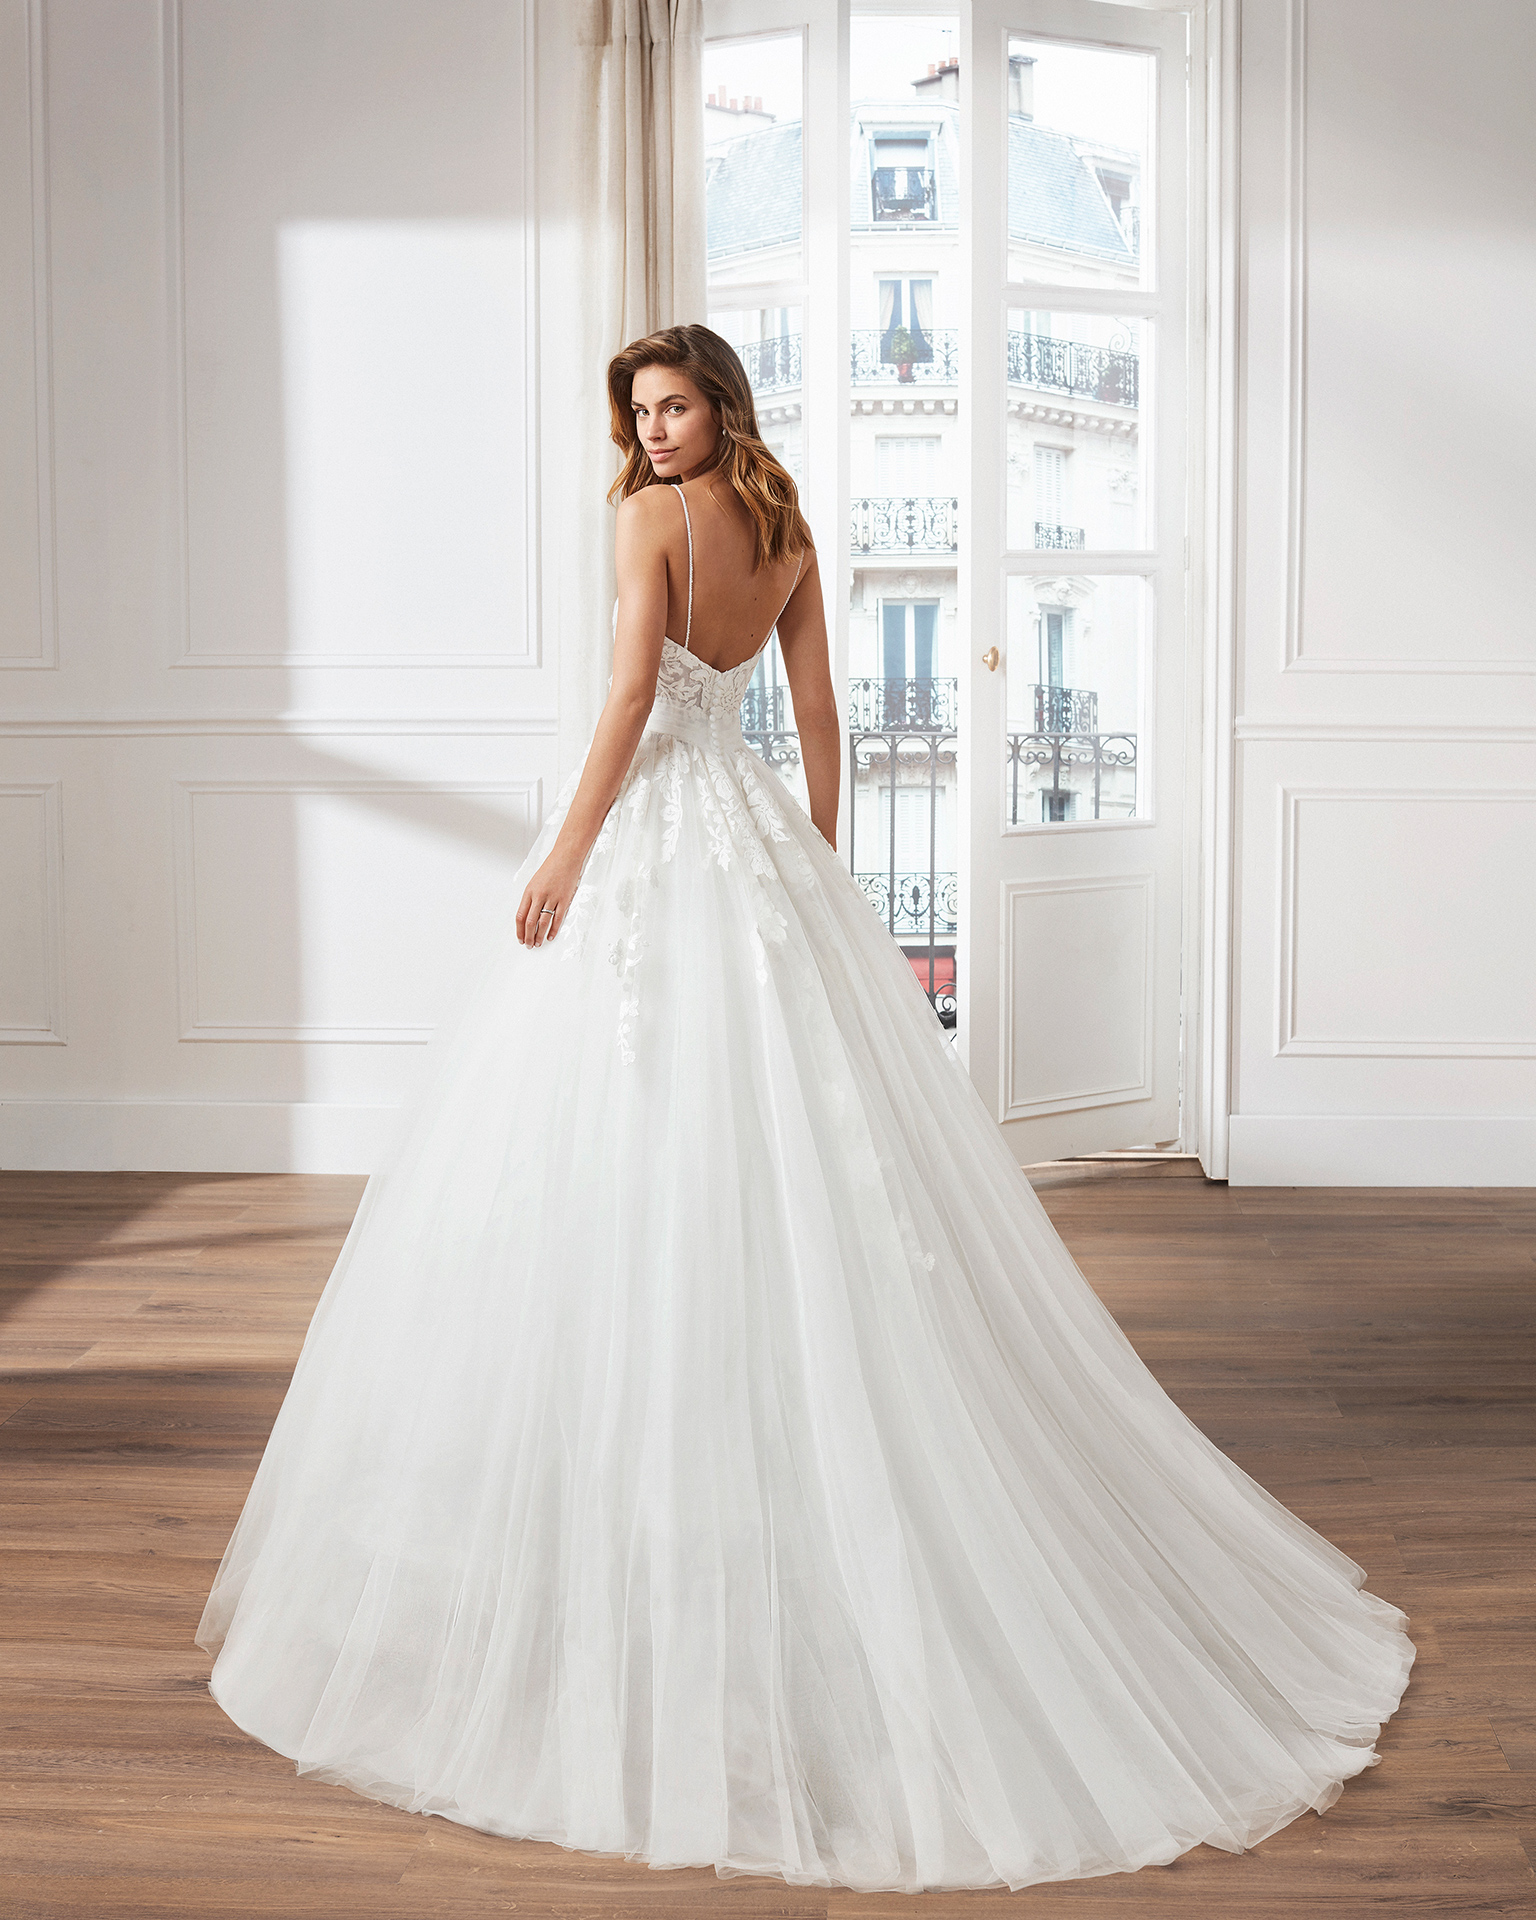 Tulle princess-style wedding dress. Sweetheart neckline, beaded straps and skirt and bodice with lace appliqués.        Available in natural. 2019  Collection.